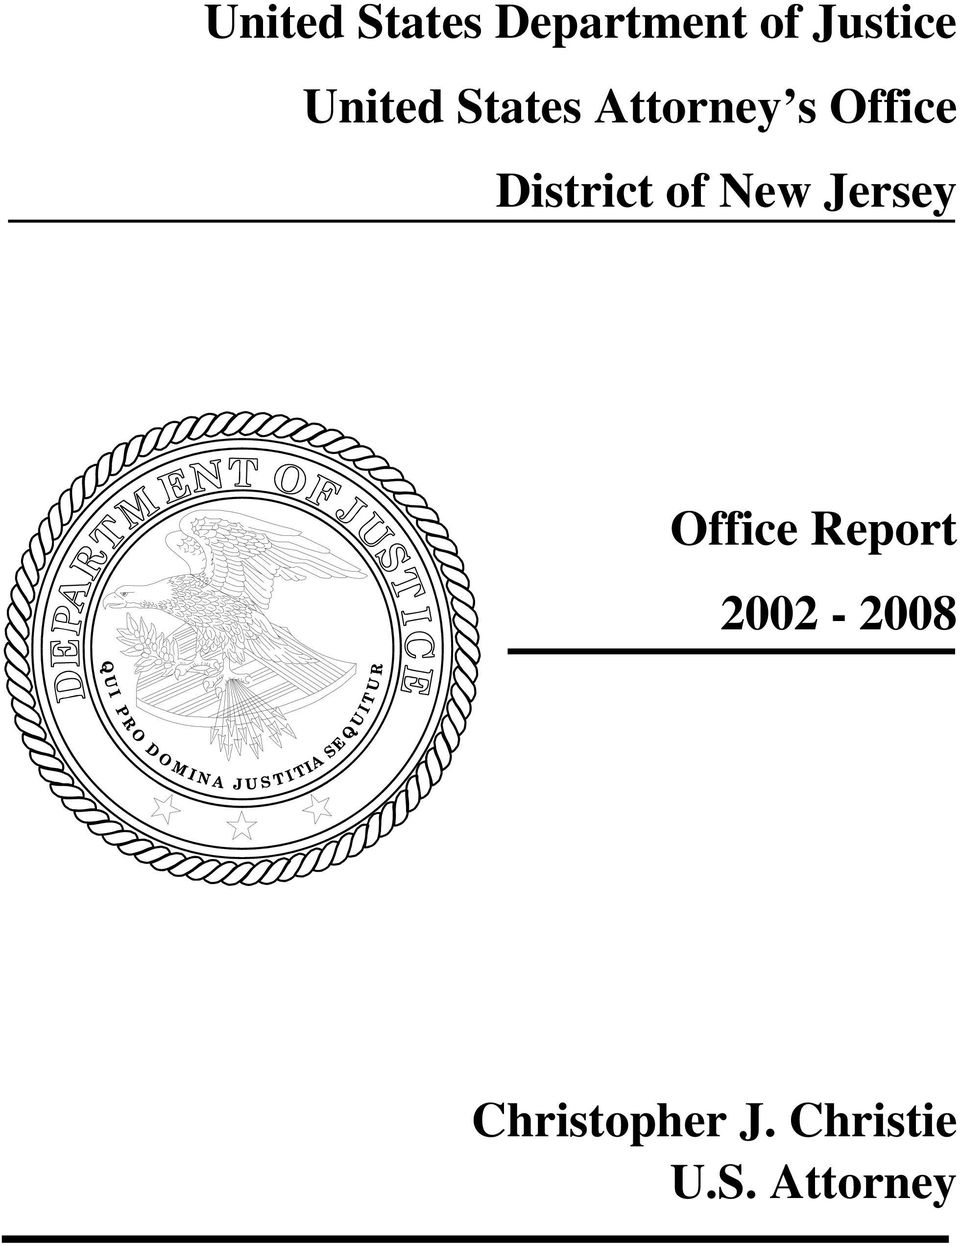 District of New Jersey Office Report